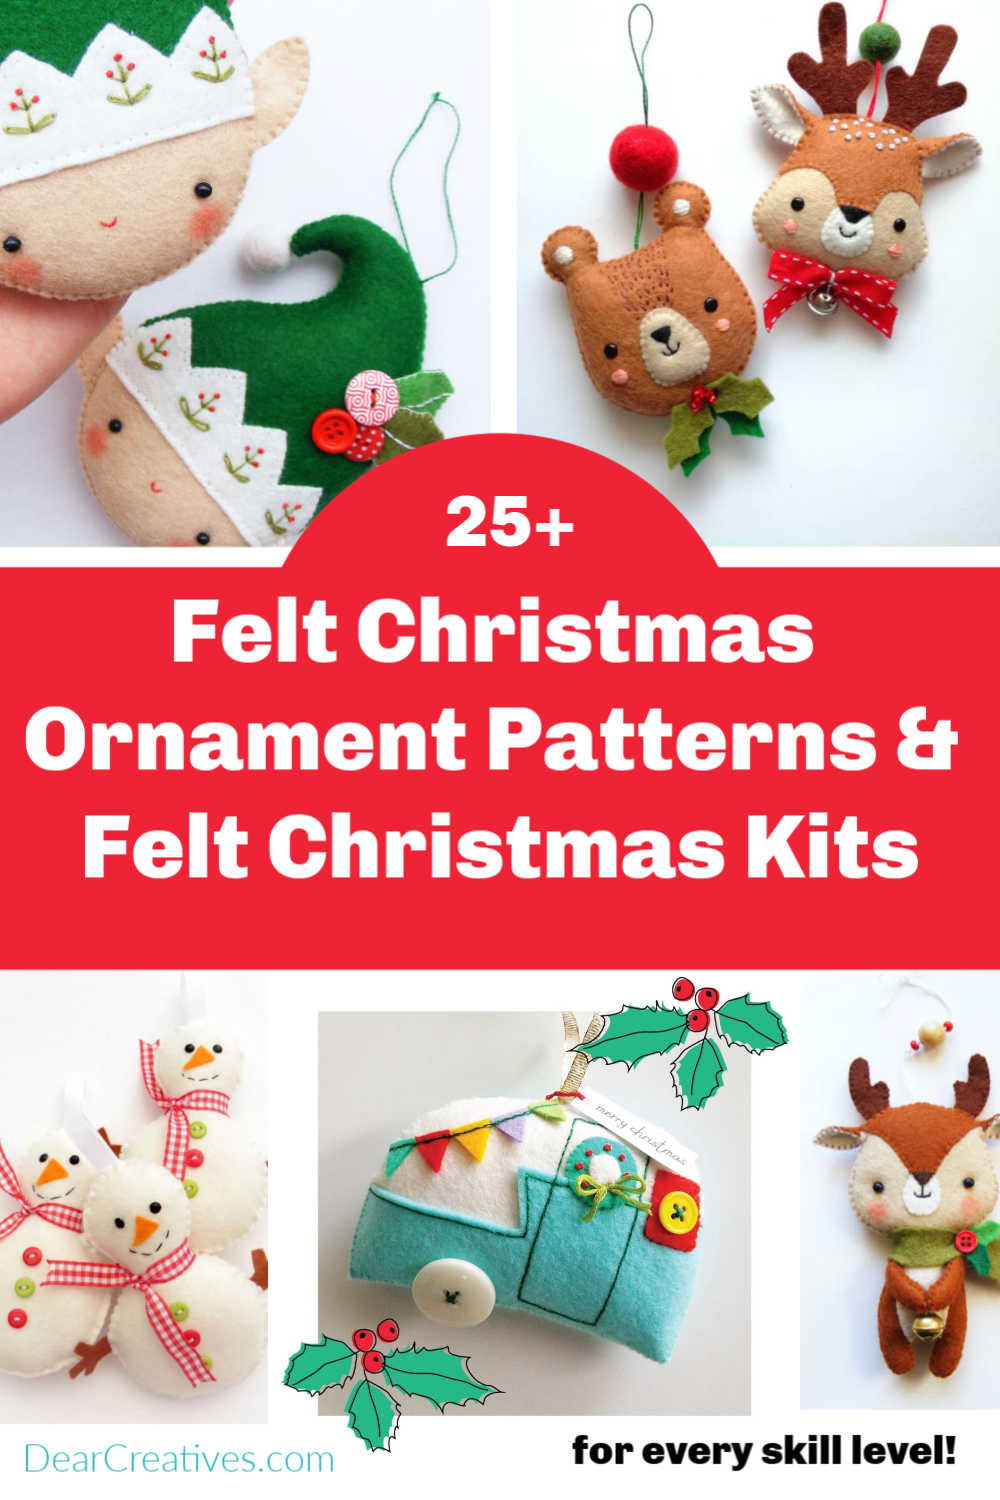 Felt Christmas Ornament Patterns And Kits For All Skill Levels